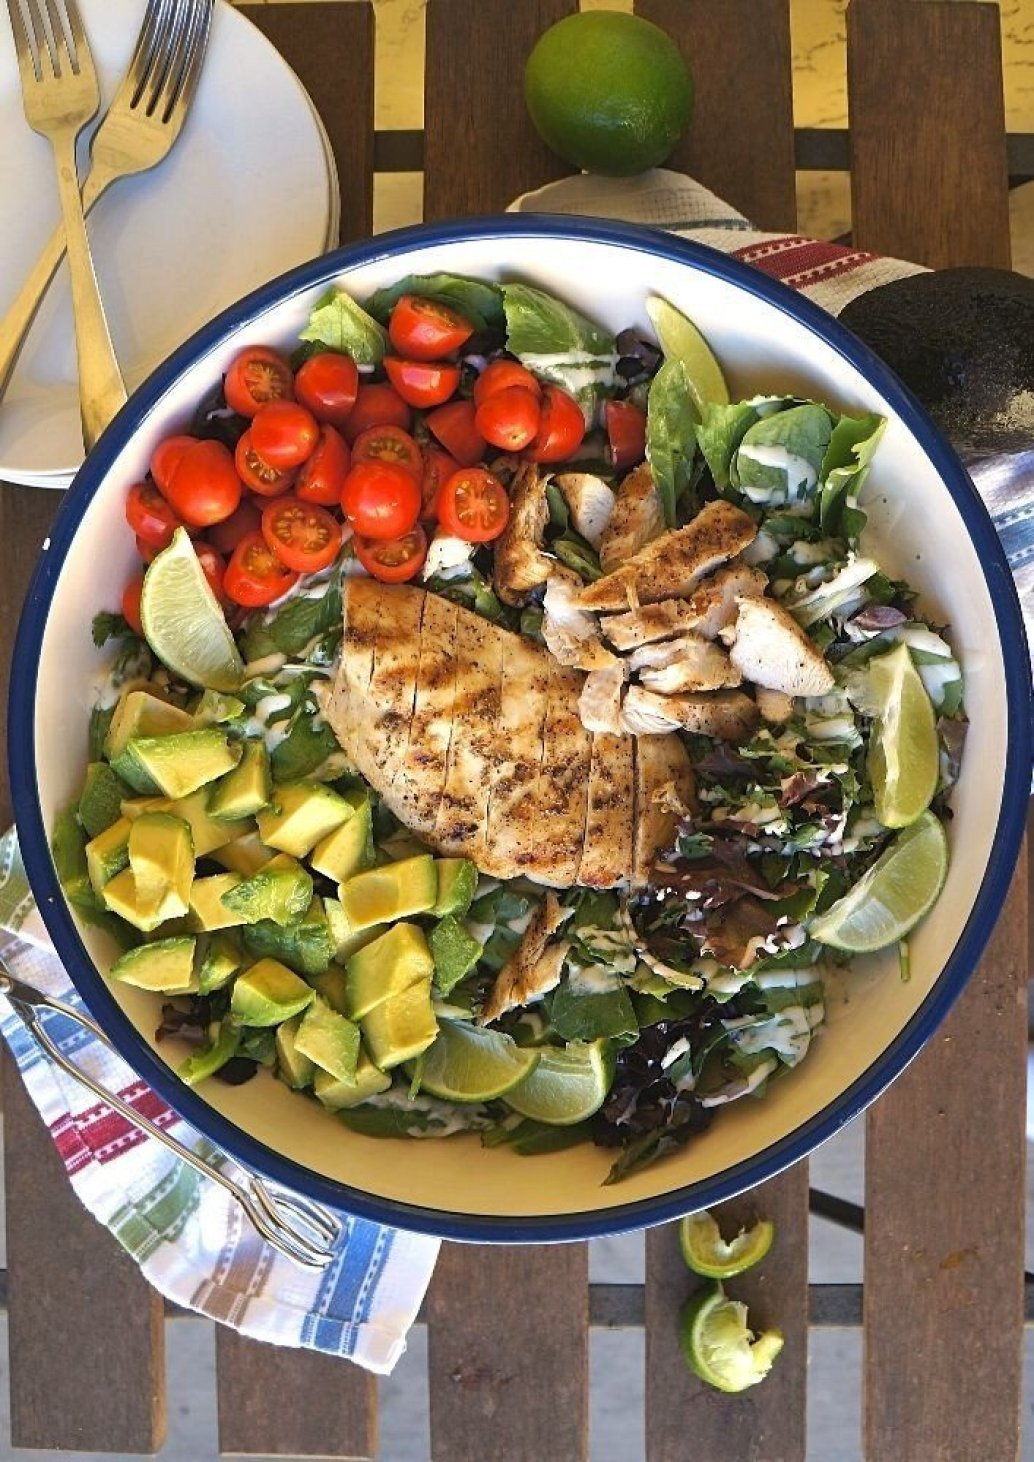 Yummiest Chicken Salad Recipes